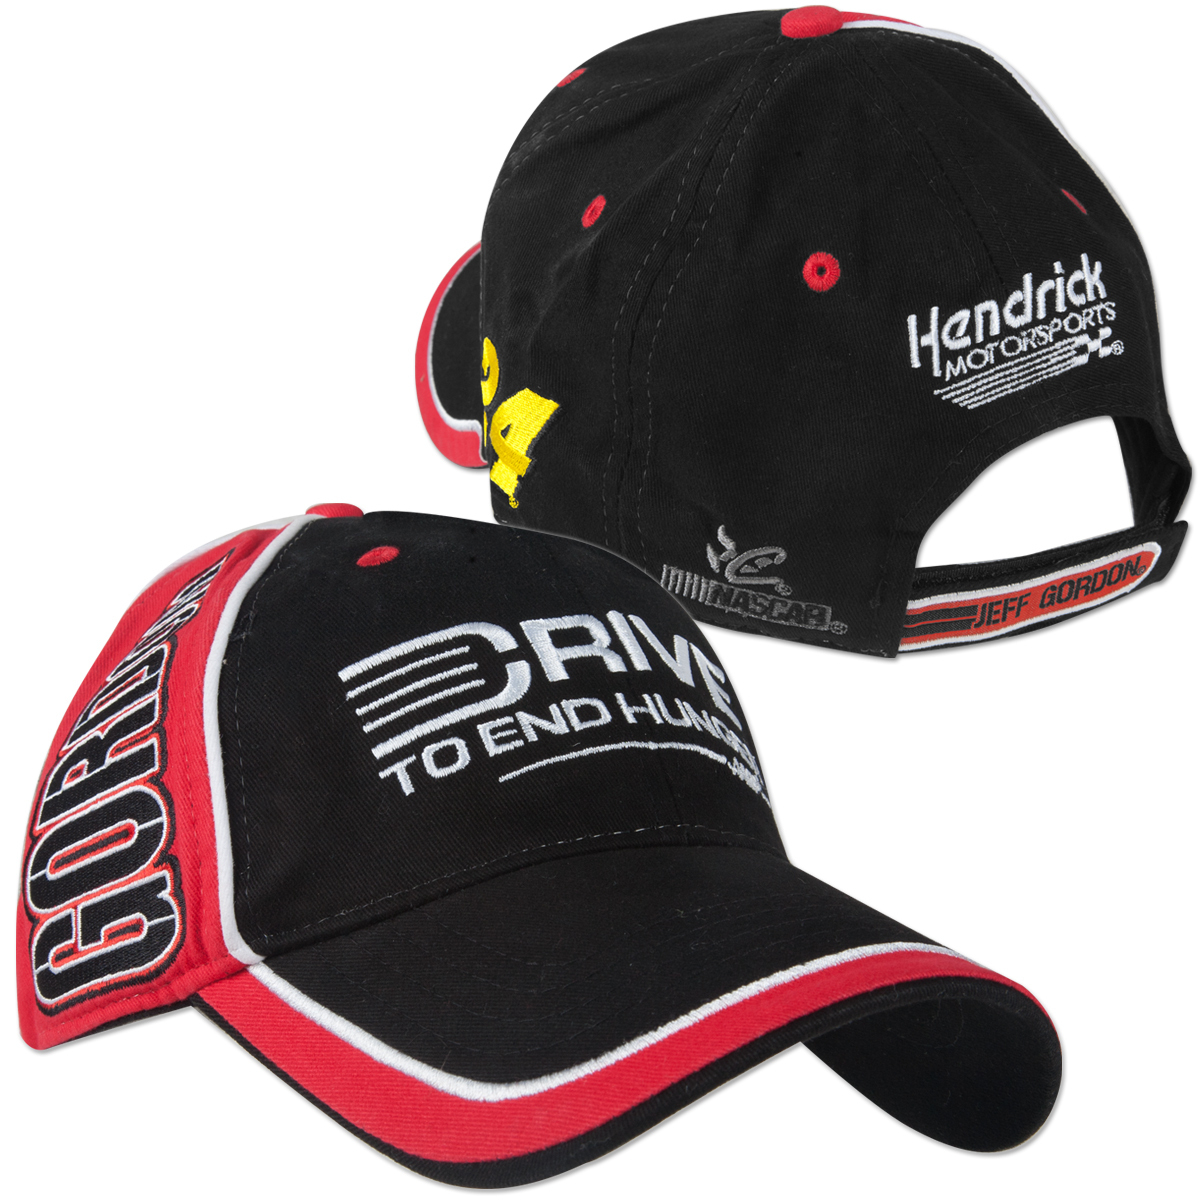 Jeff Gordon #24 AARP BigName Colorblock Hat